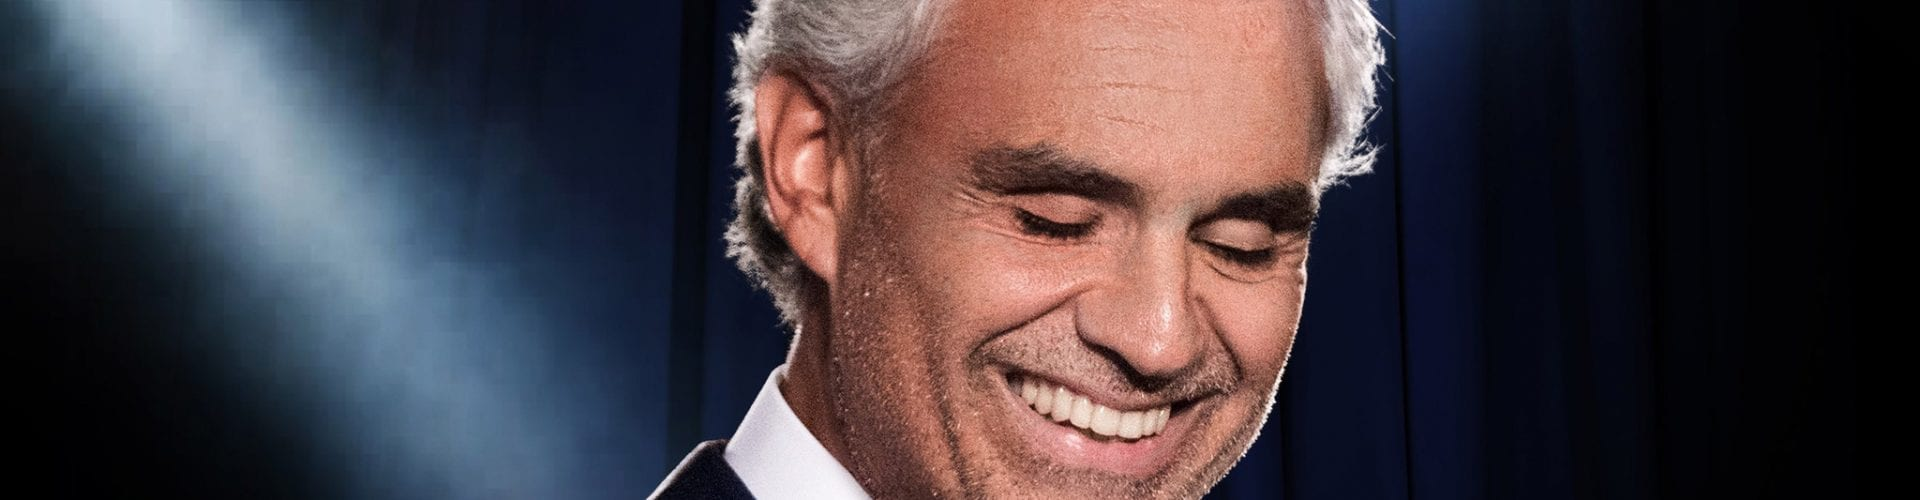 Andrea Bocelli To Play U.S. Arena Tour This December